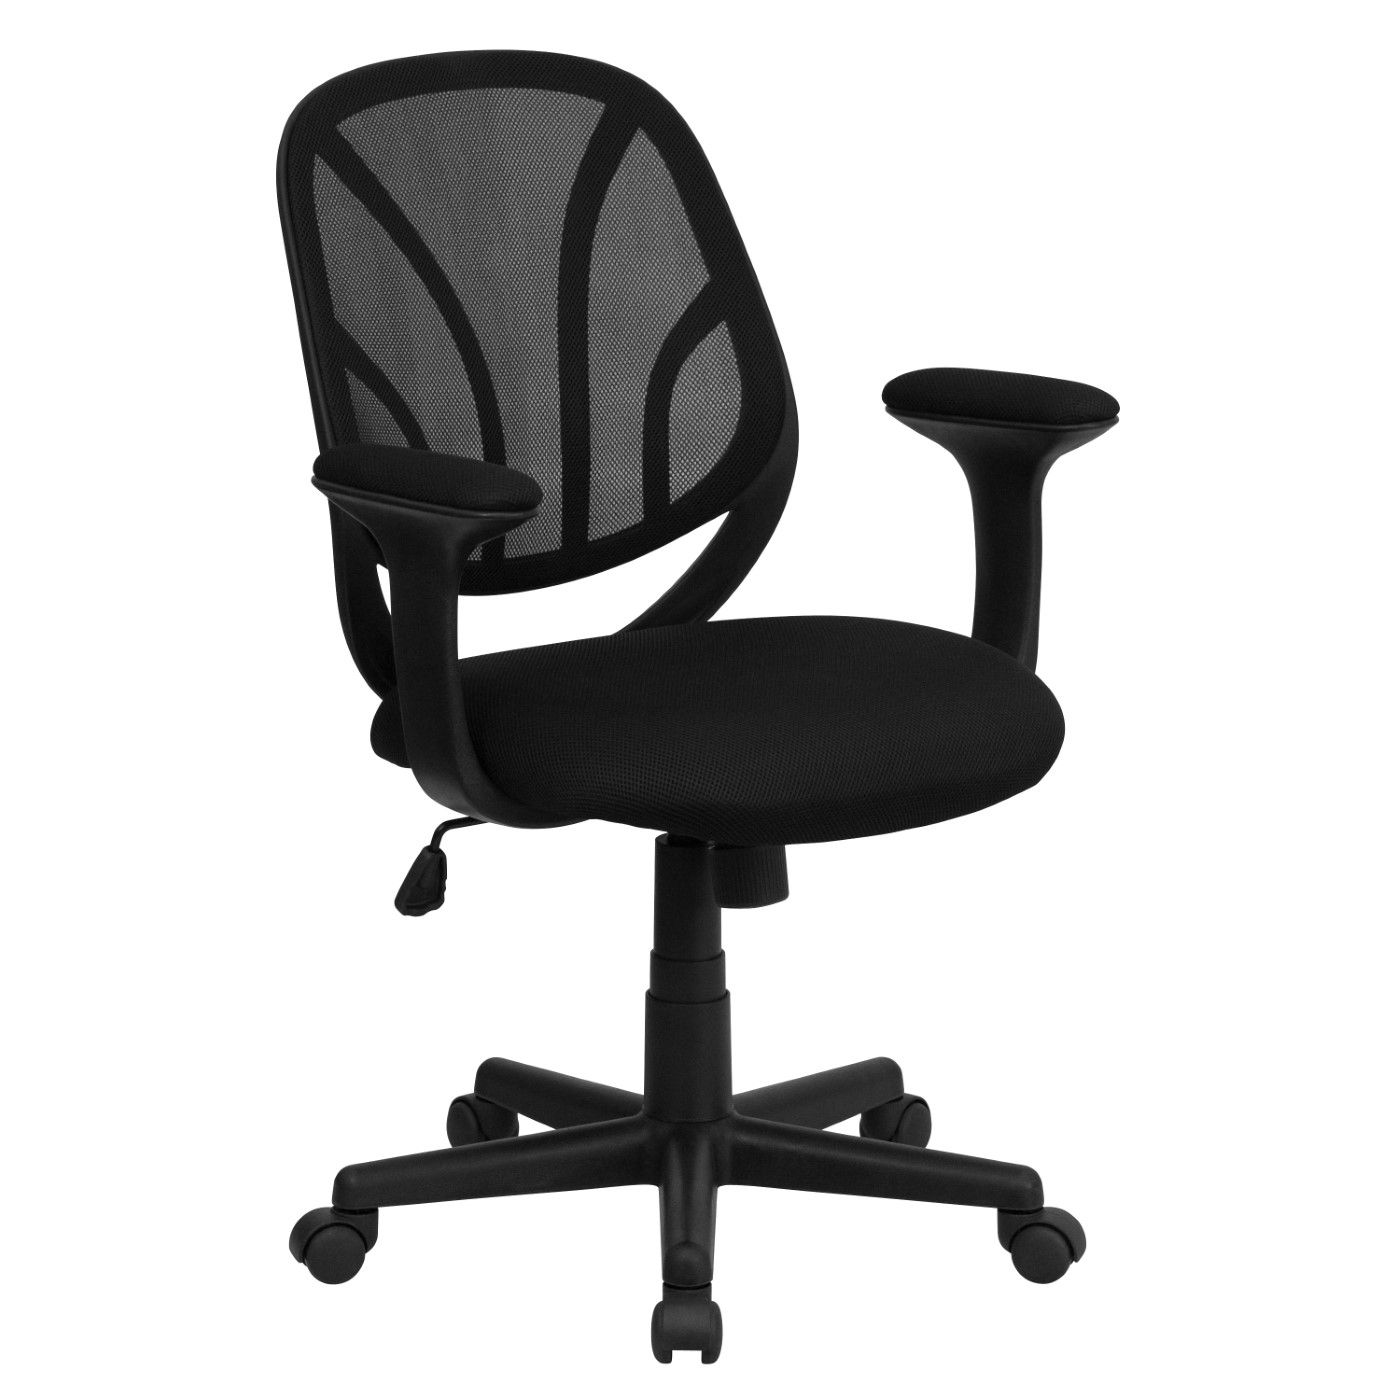 Y-GO Office Chair™ Mid-Back Black Mesh Swivel Task Office Chair with Arms